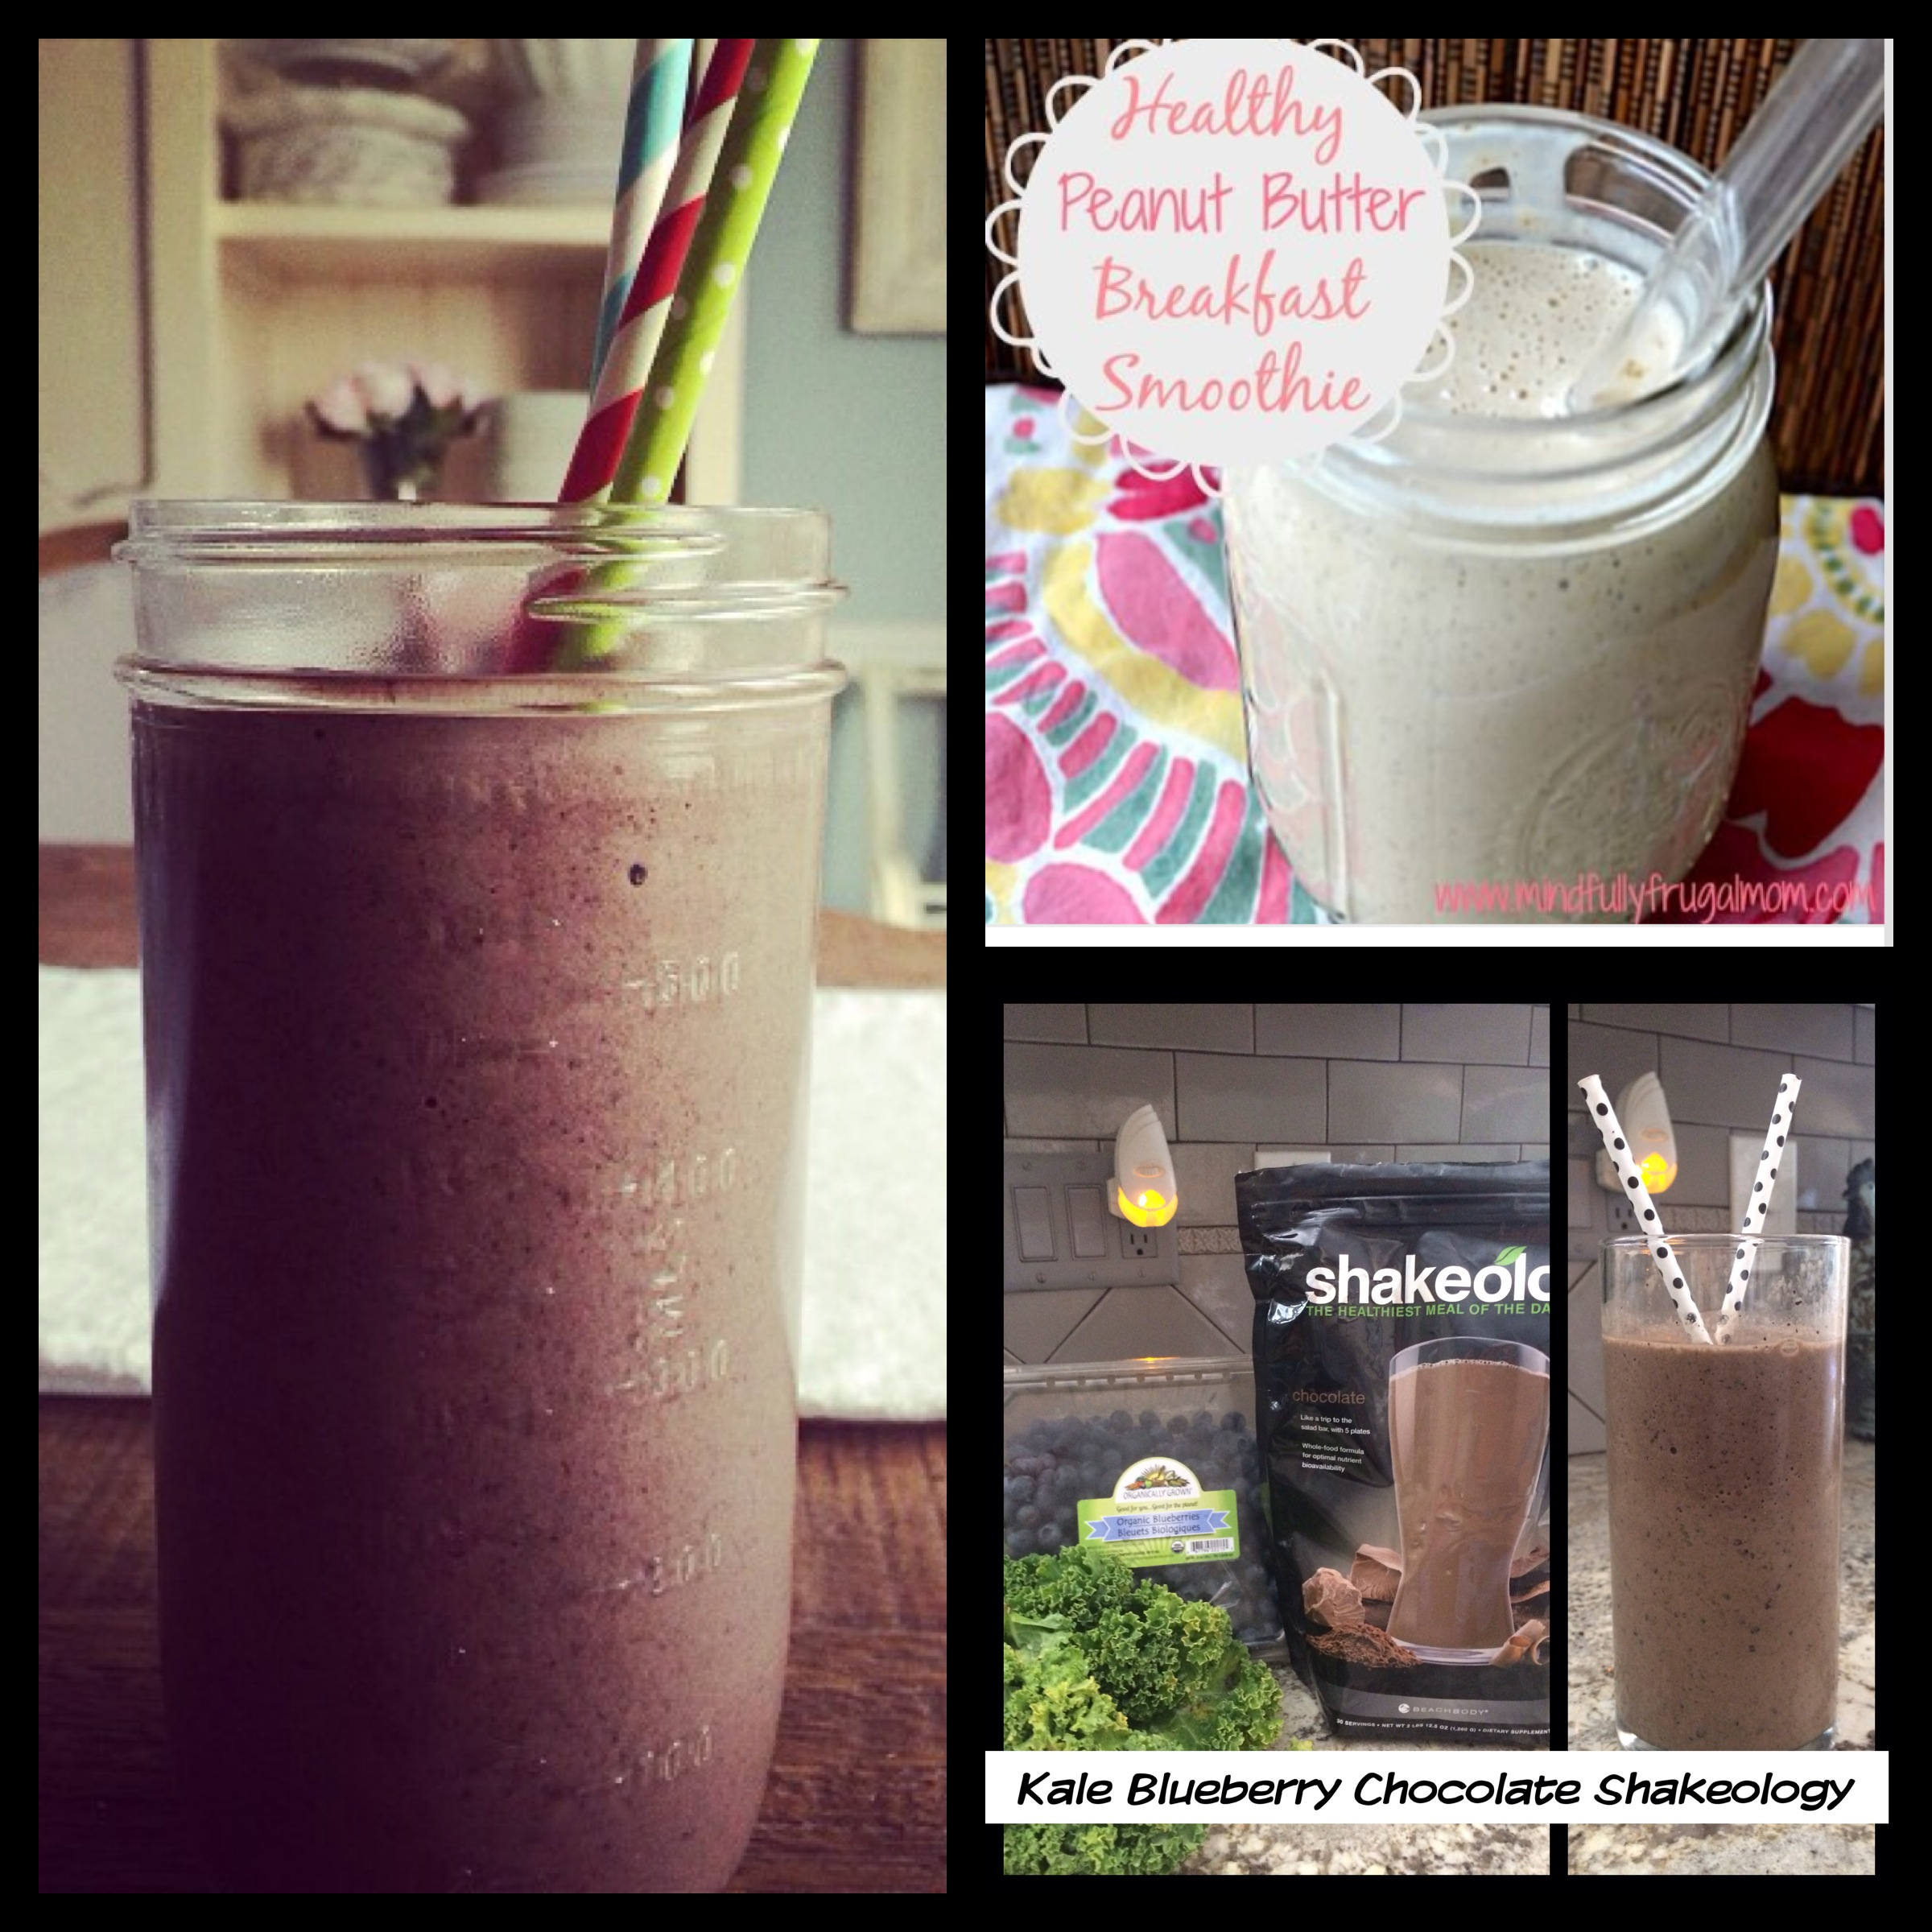 Chocolate ShakeO and Vanilla ShakeO - sometimes I do put Kale and Blueberries in it or p-nut butter